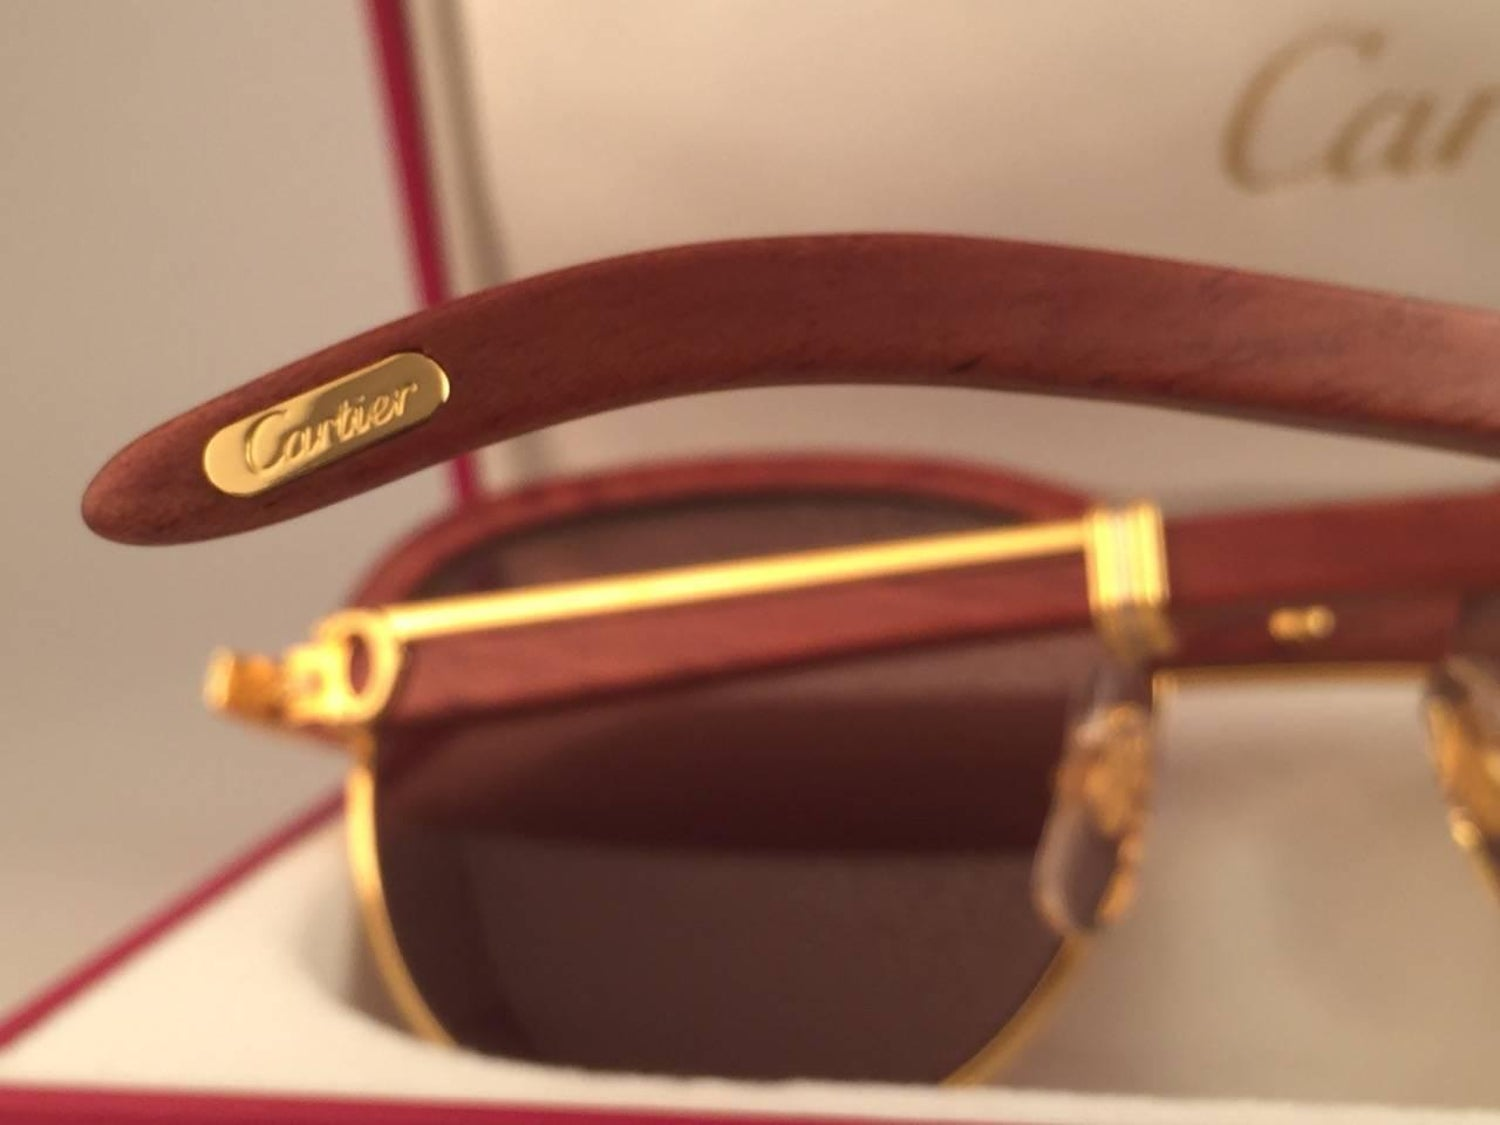 b17153bdd780 New Cartier Wood Malmaison Precious Wood Palisander and Gold 56mm Sunglasses  at 1stdibs